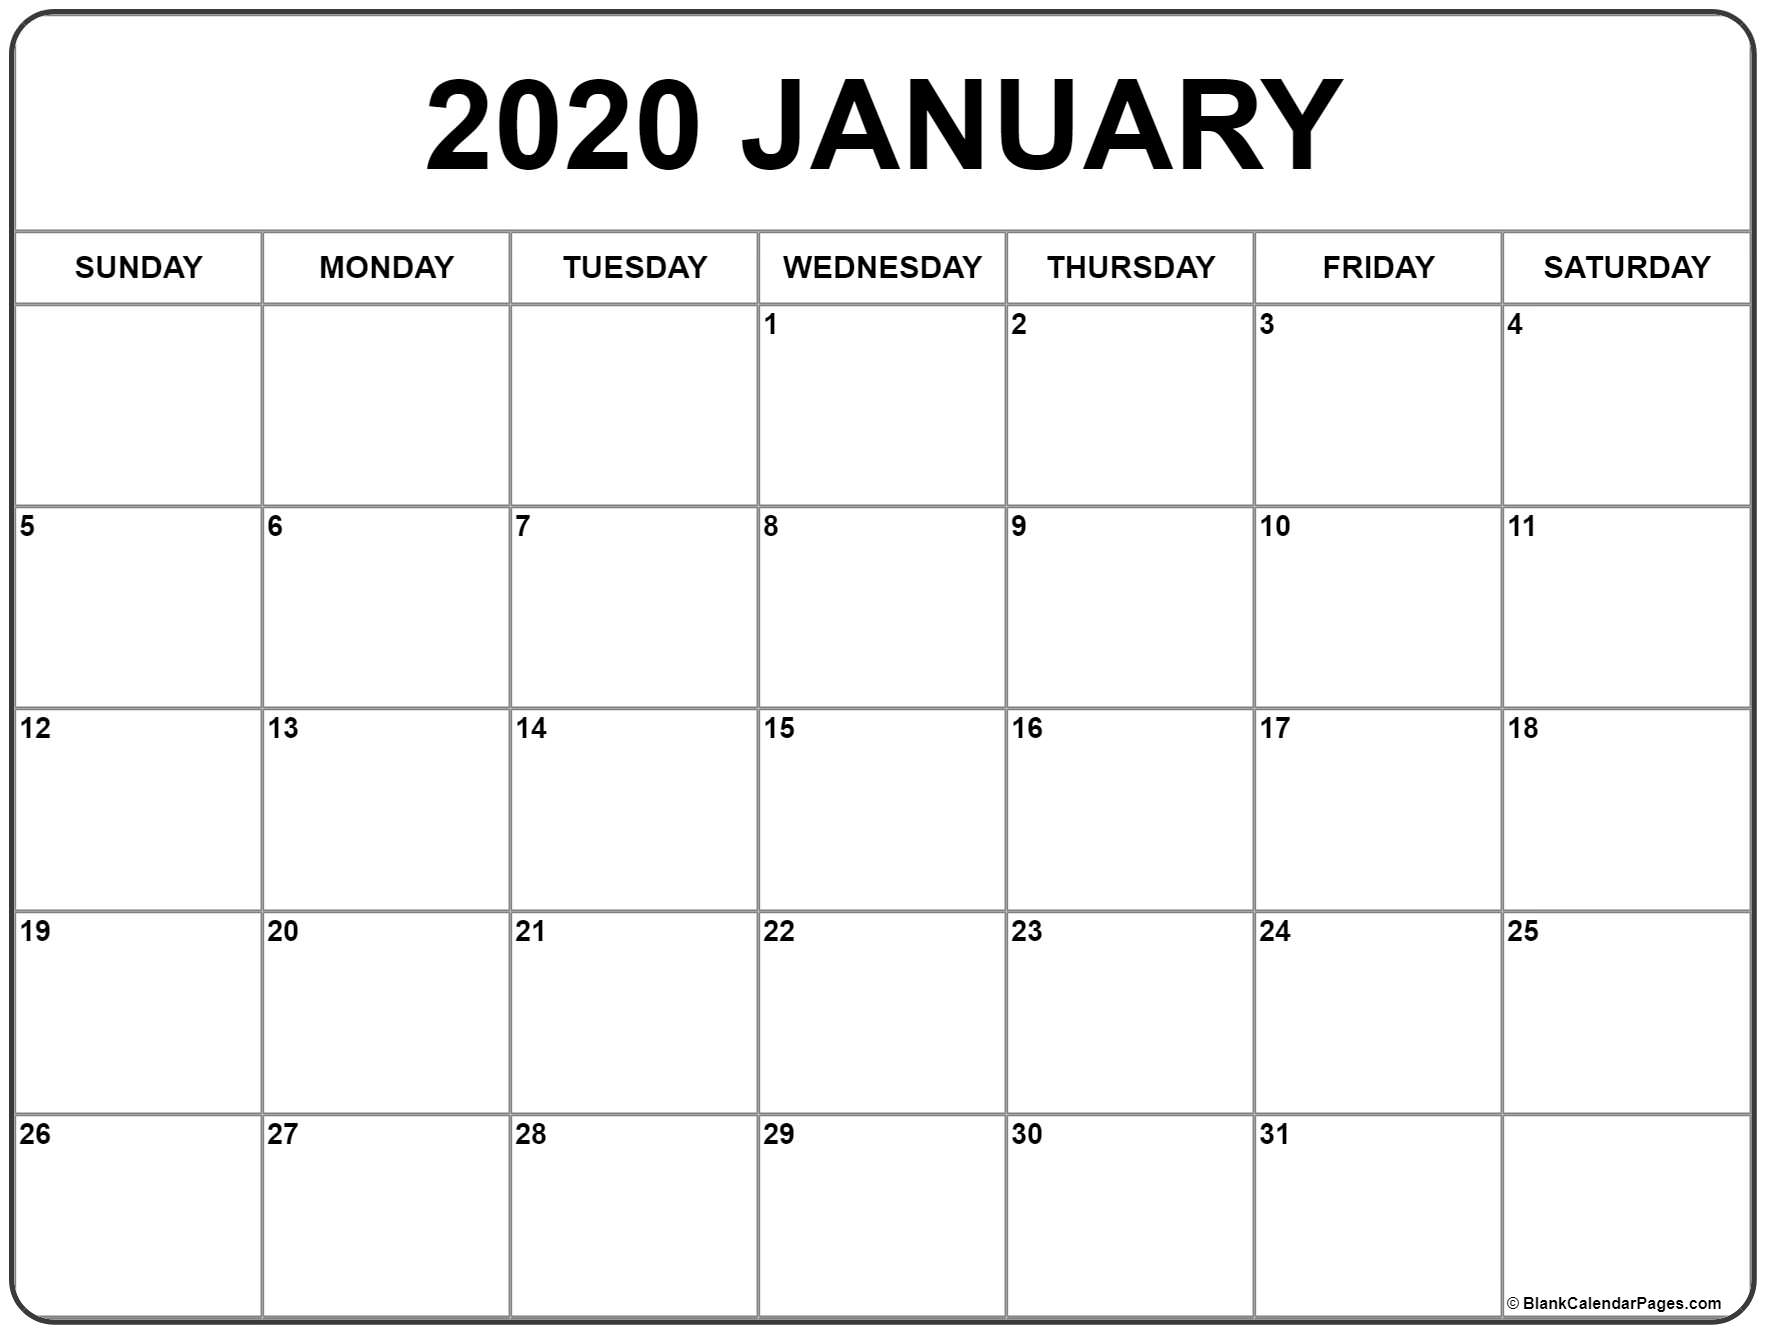 January 2020 Calendar Spot  Yatay.horizonconsulting.co with regard to Calendarpedia January 2020